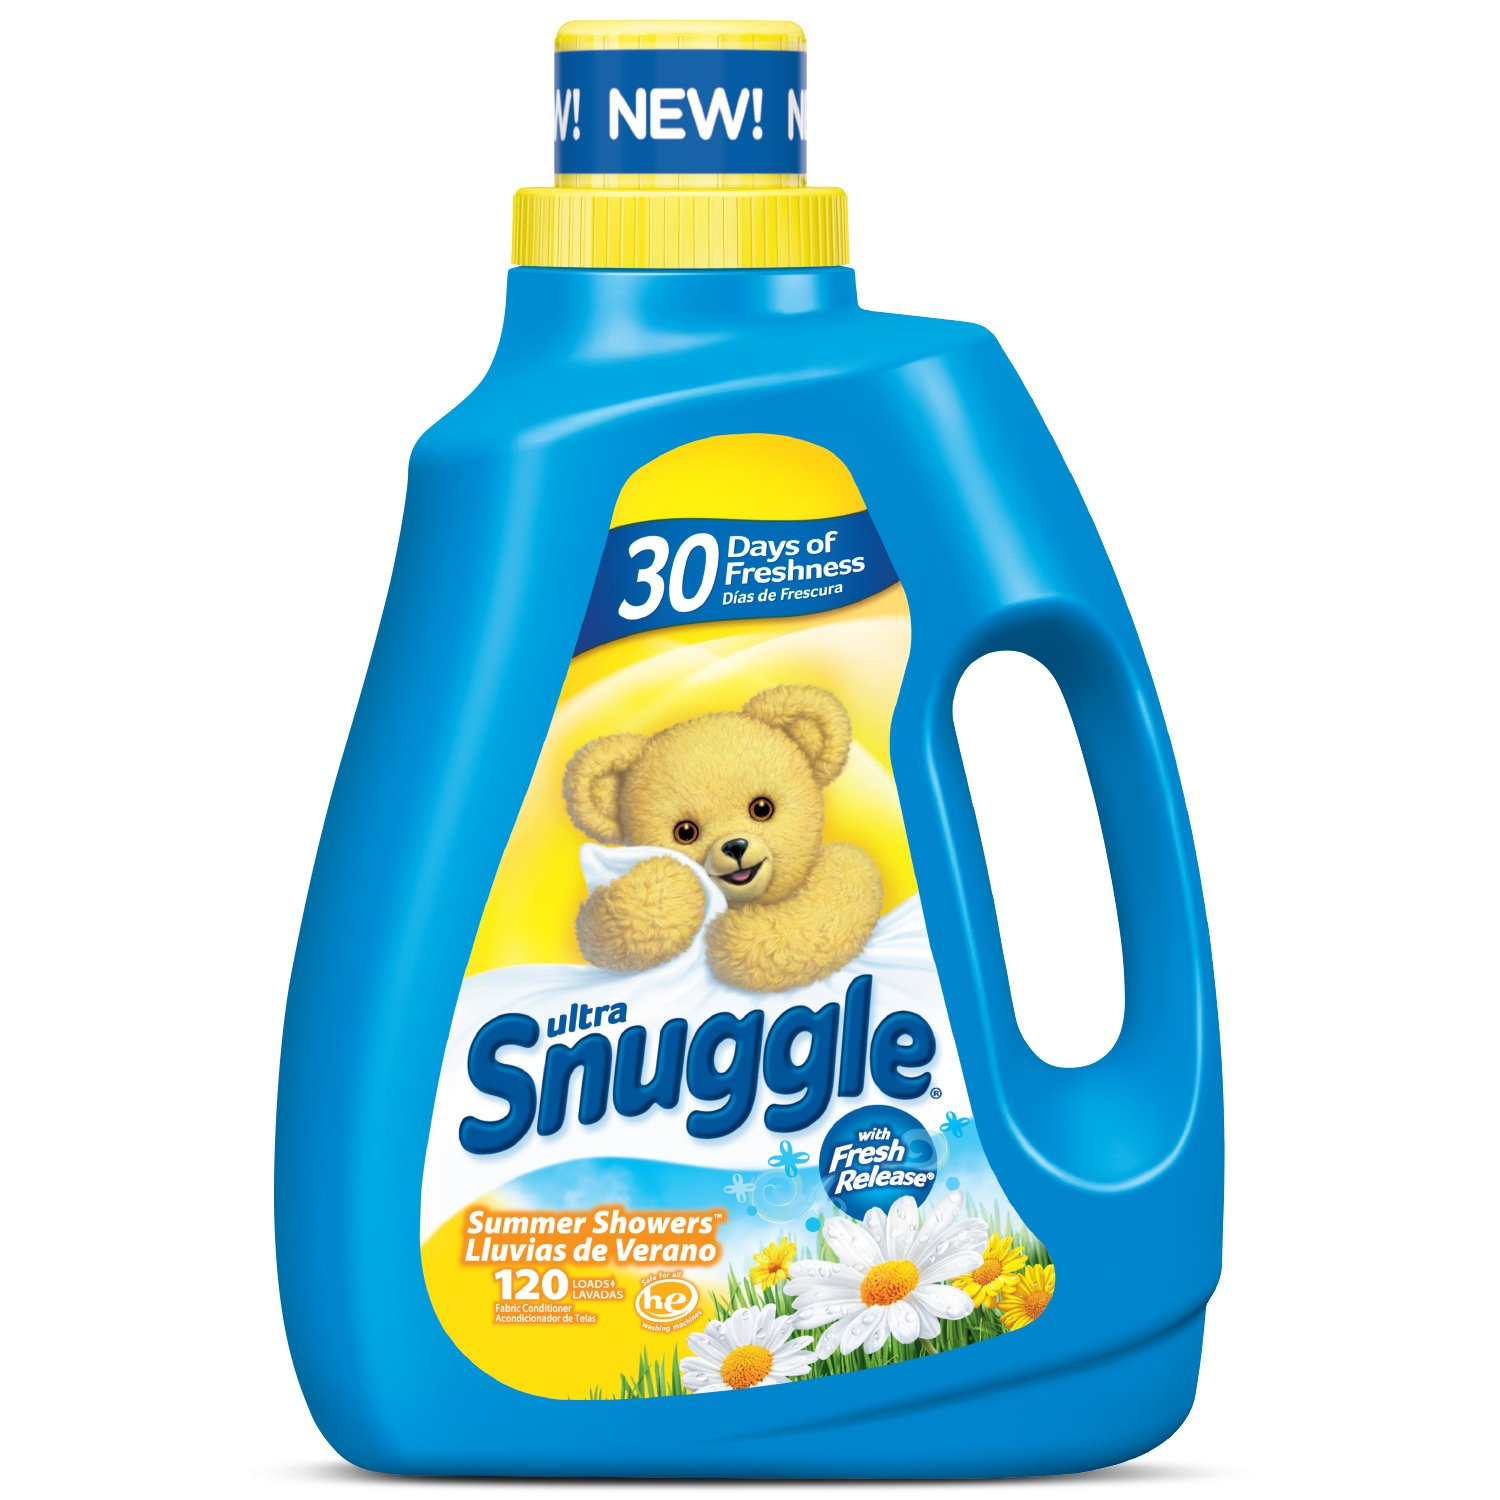 Amazon.com: Snuggle Liquid Fabric Softener with Fresh Release, Summer Showers, 96 Fluid Ounces (Pack of 4): Health & Personal Care